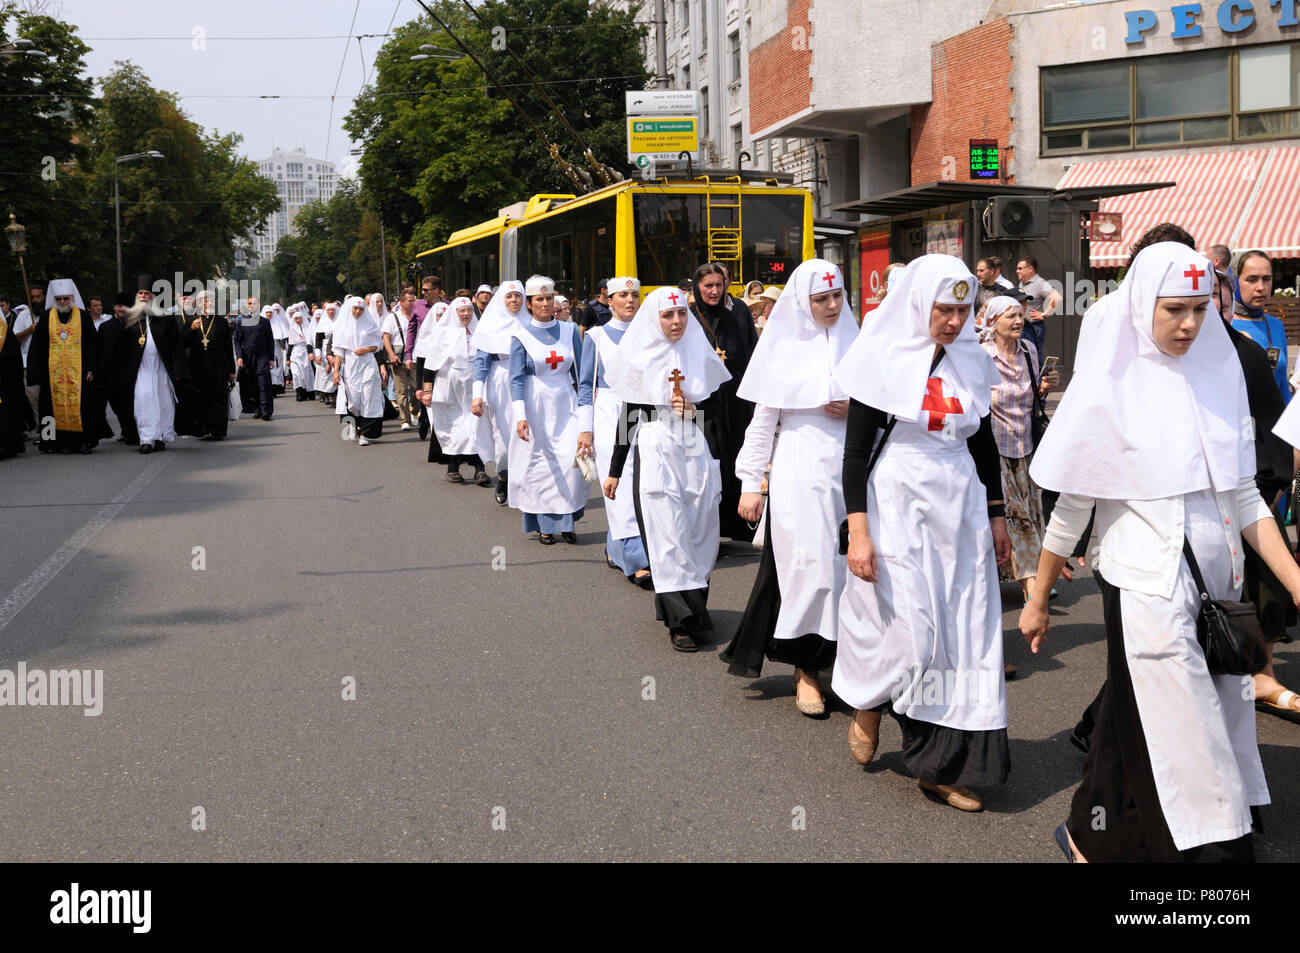 Orthodox sisters of charity dressed in white cassocks with red cross signs going down street. the Day of Baptism of Rus. July 27, 2017. Kiev, Ukraine - Stock Image